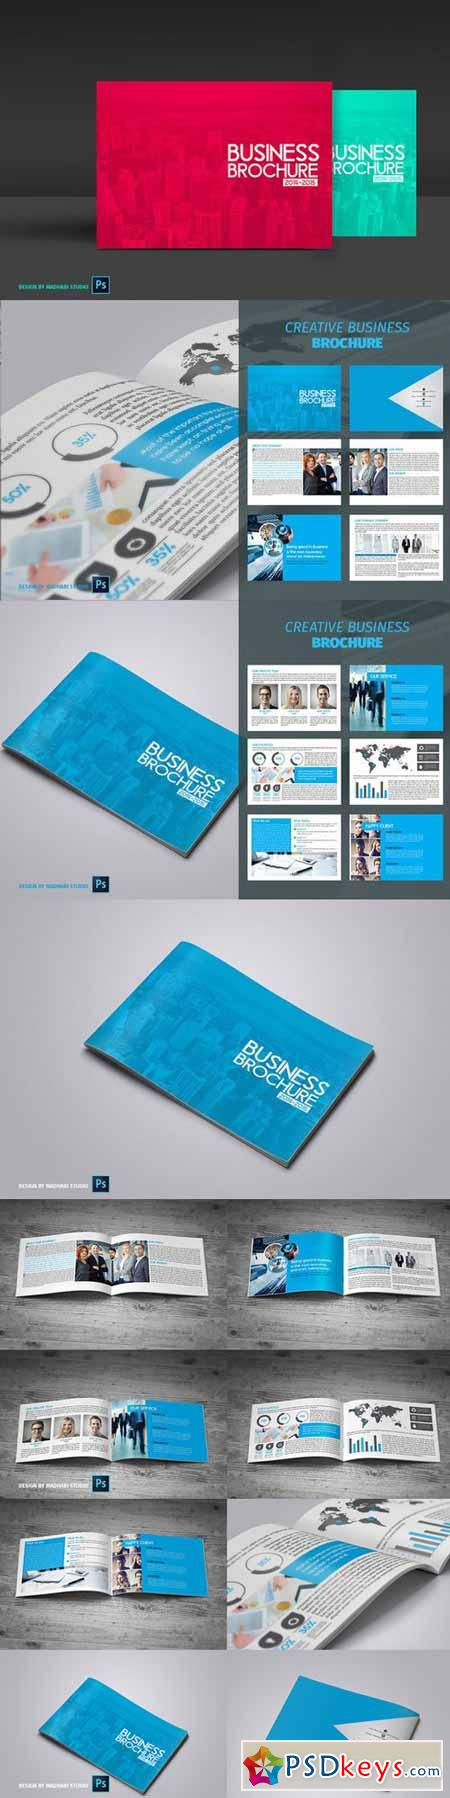 12 Pages Business Brochure 377284